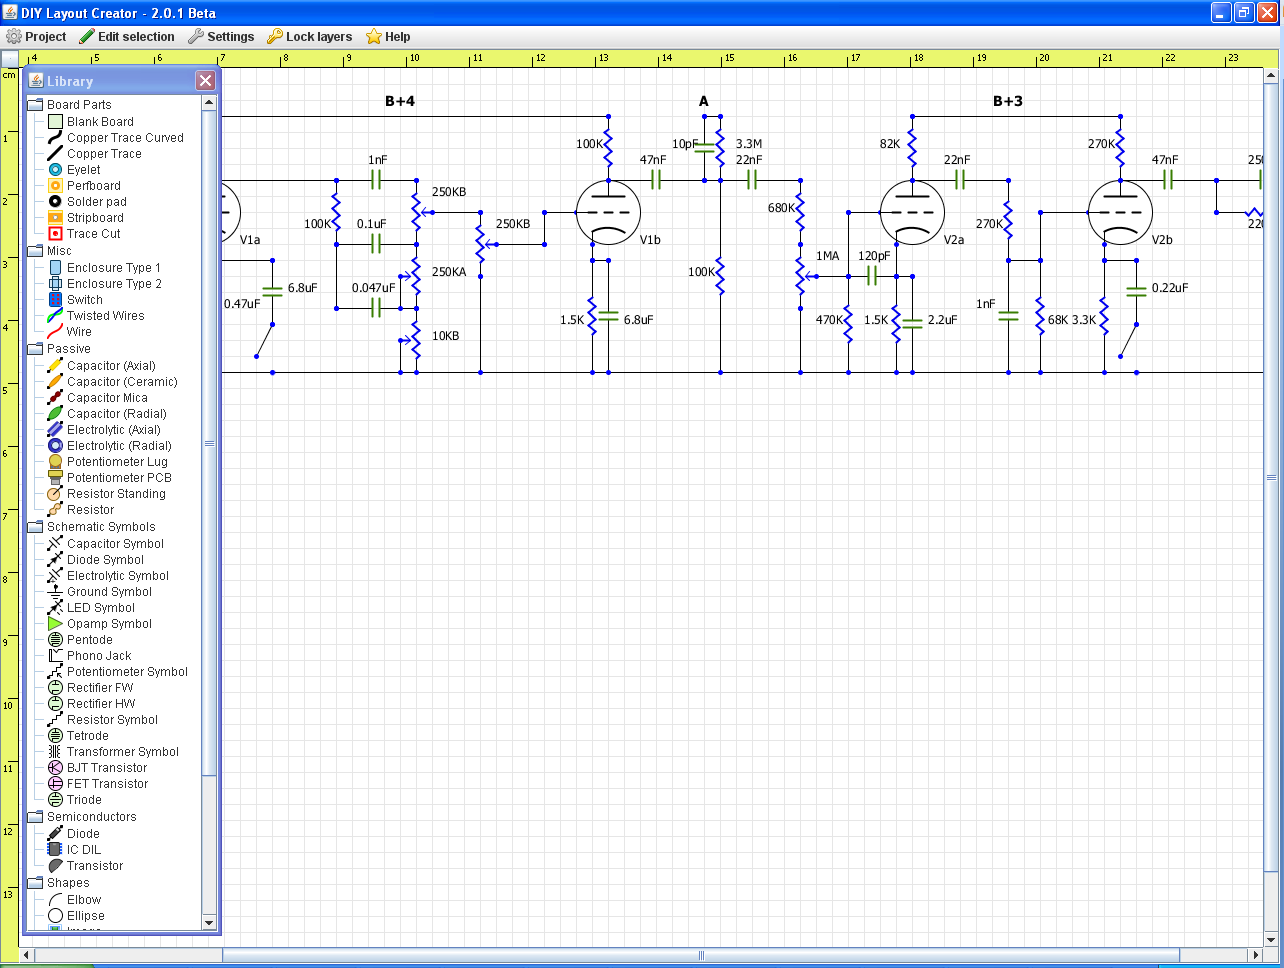 Diy Layout Creator Fever Ibanez V1 Wiring Diagram 118